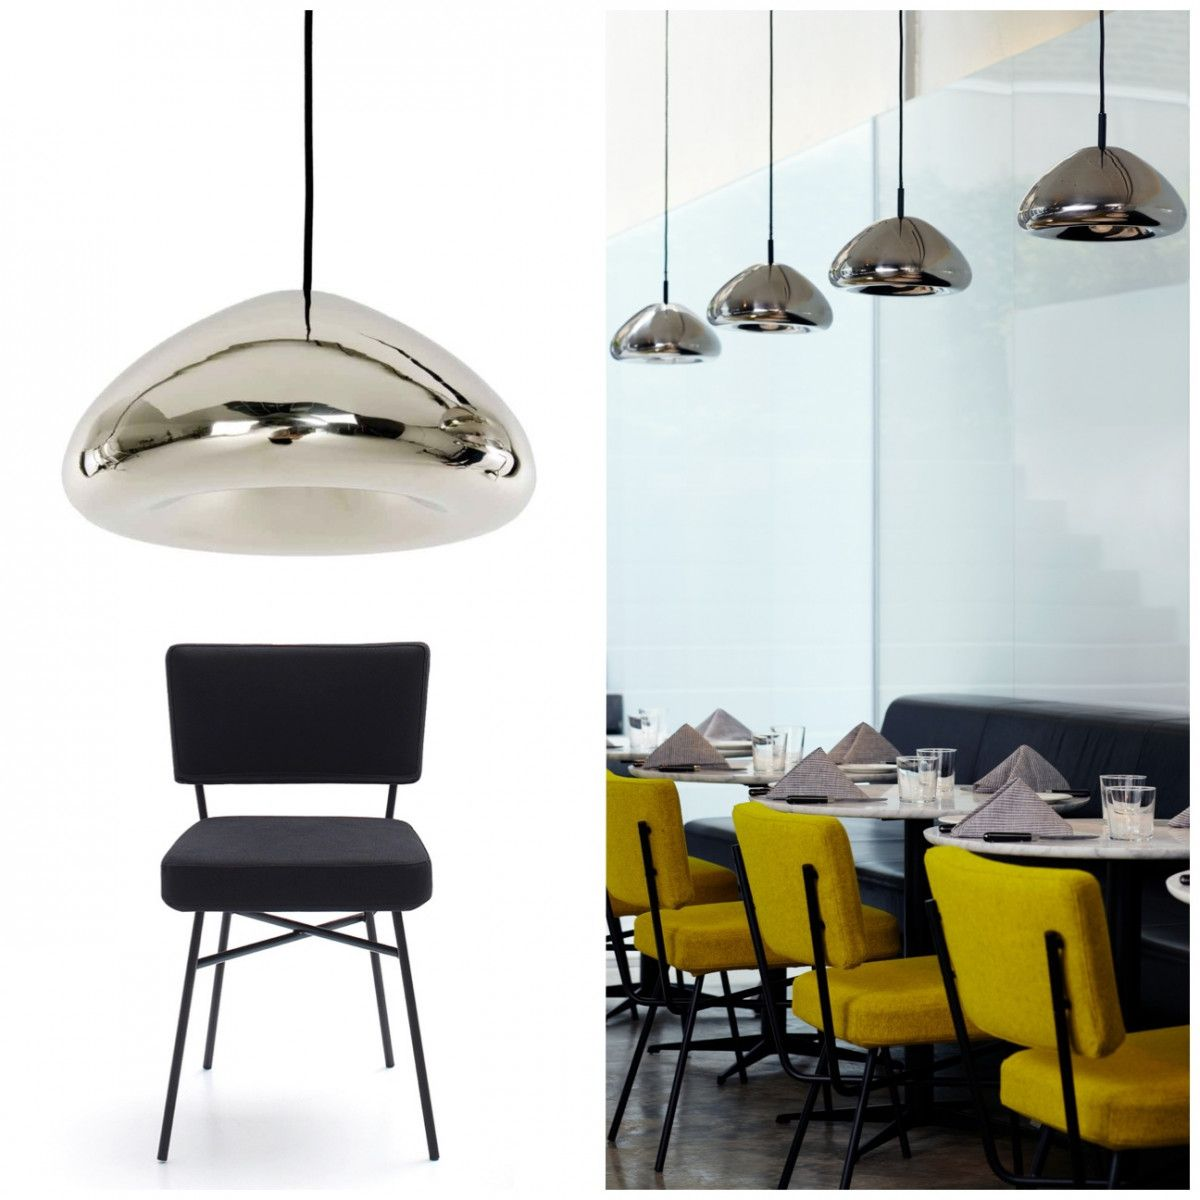 Tom Dixon Void Pendant Light In Chrome Or Copper Golights Com Au House Furniture Design Pendant Light Chrome Pendant Lighting